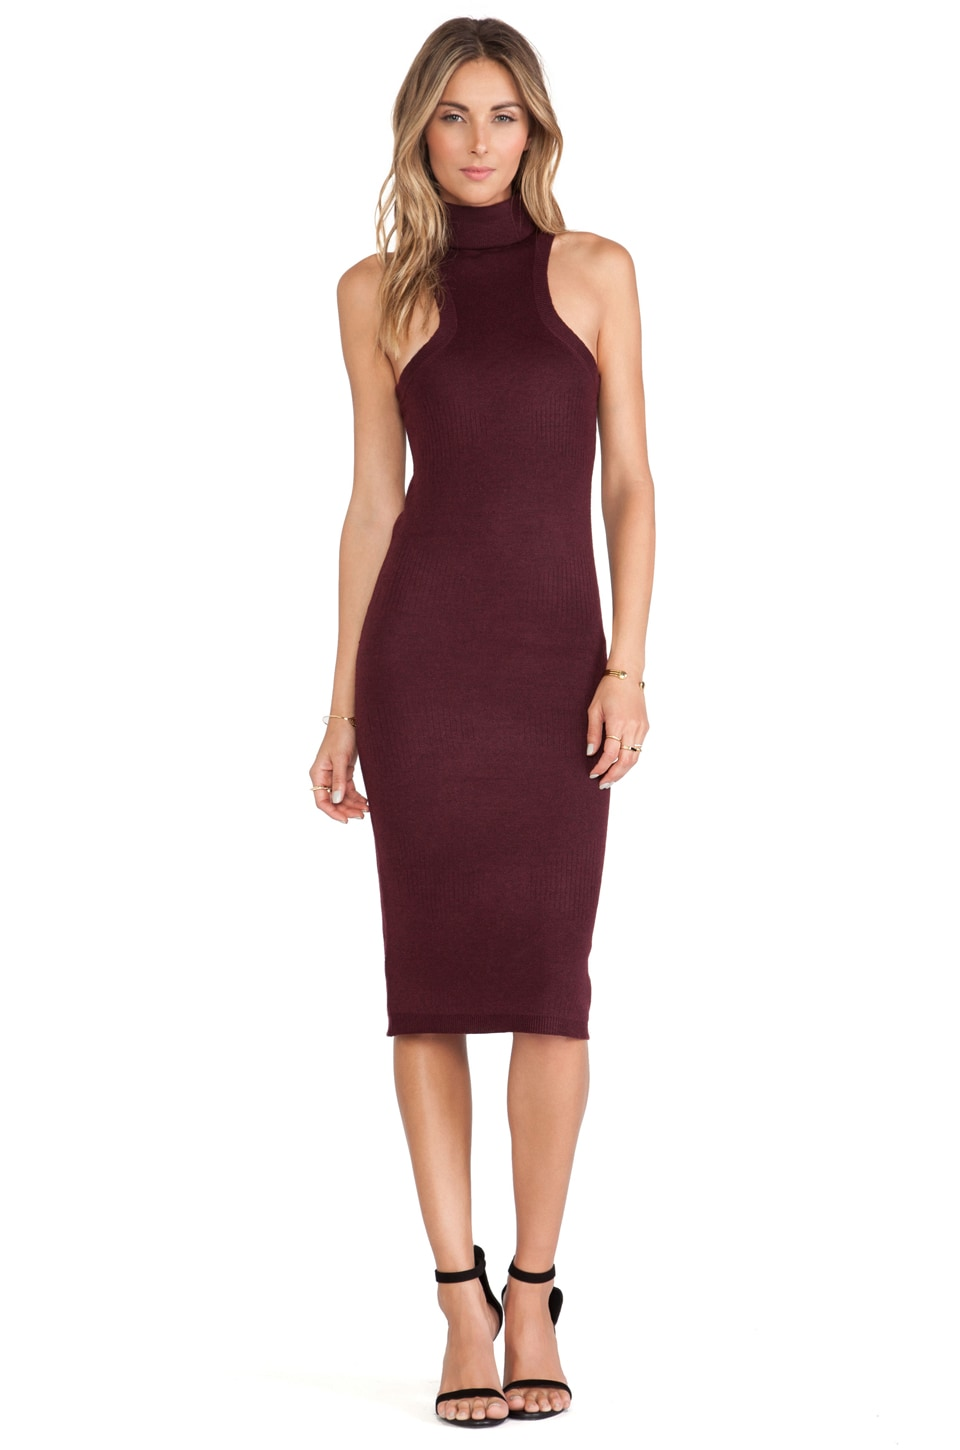 Rachel Pally Turtleneck Mid-Length Dress in Malbec